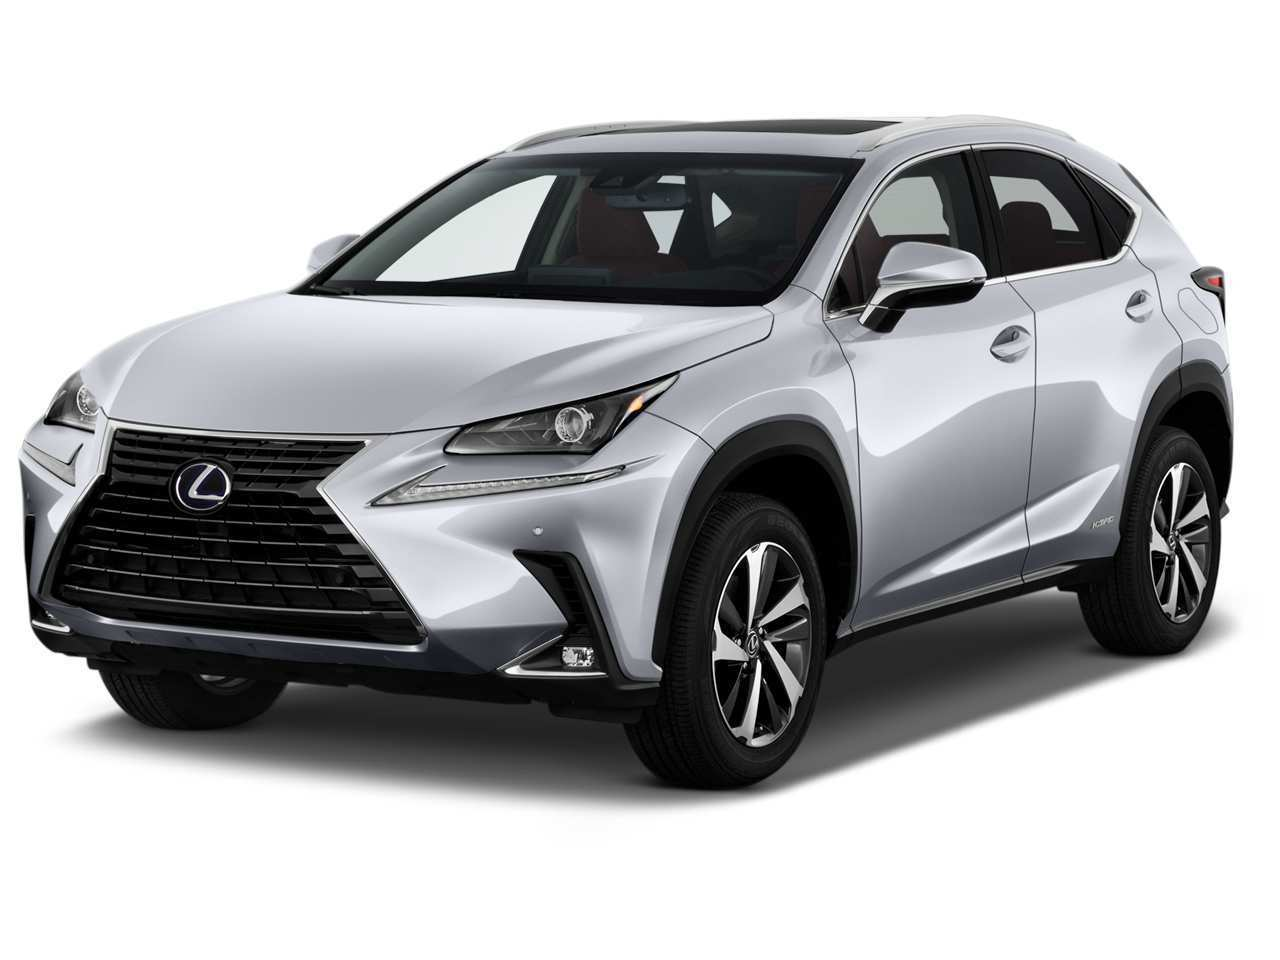 77 The Best 2020 Lexus Nx Price And Review